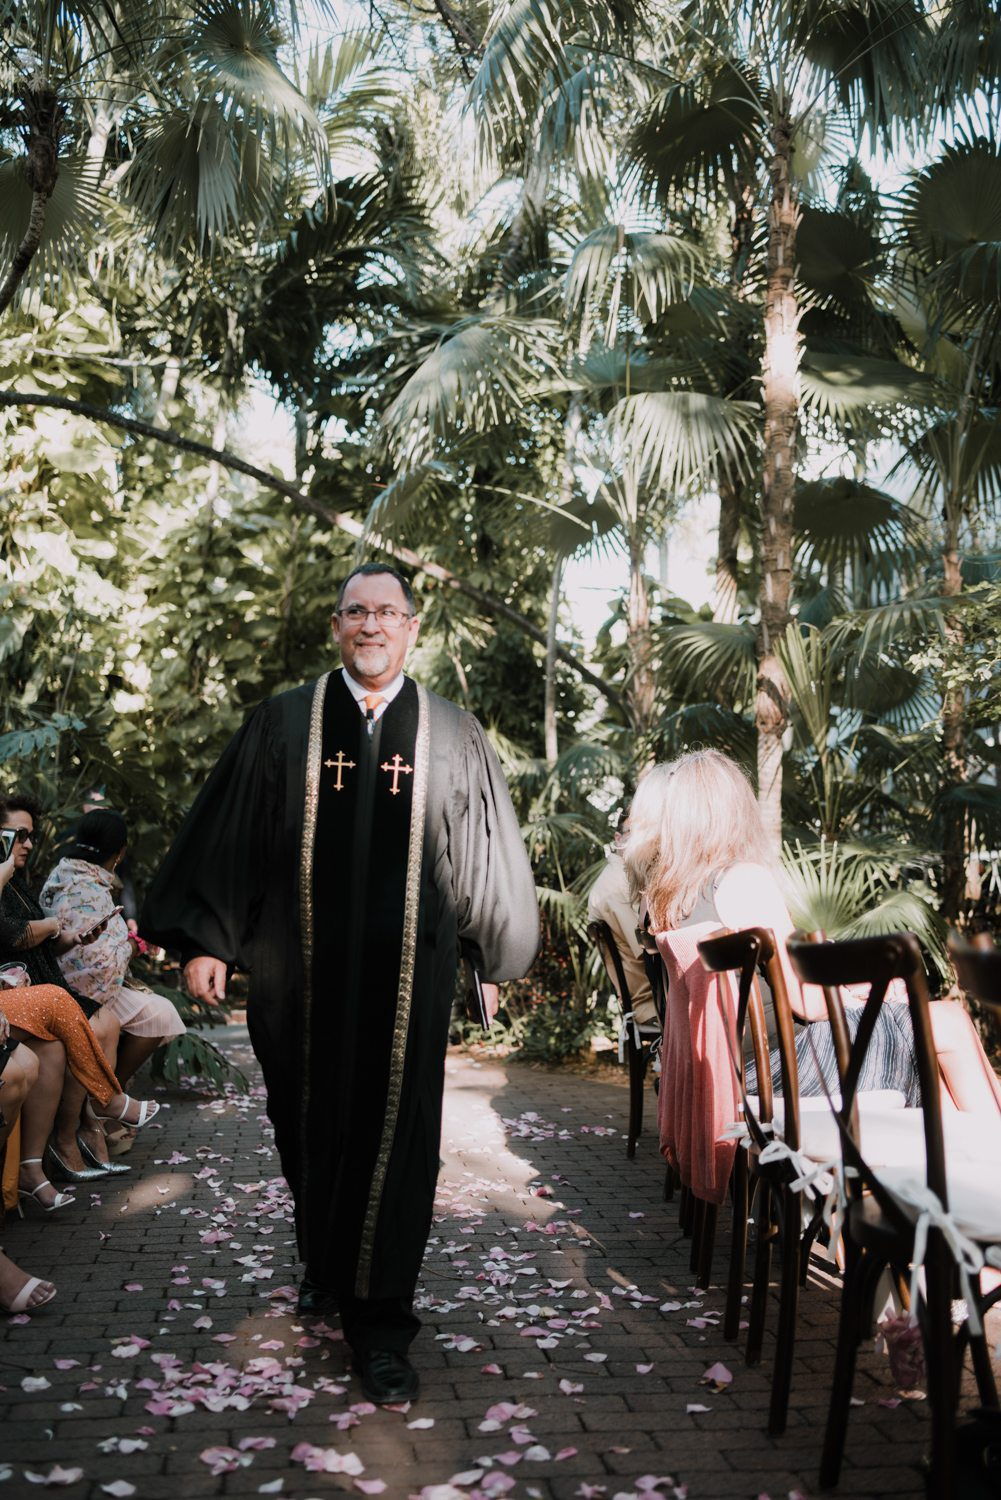 Priest walking down the aisle before a wedding ceremony